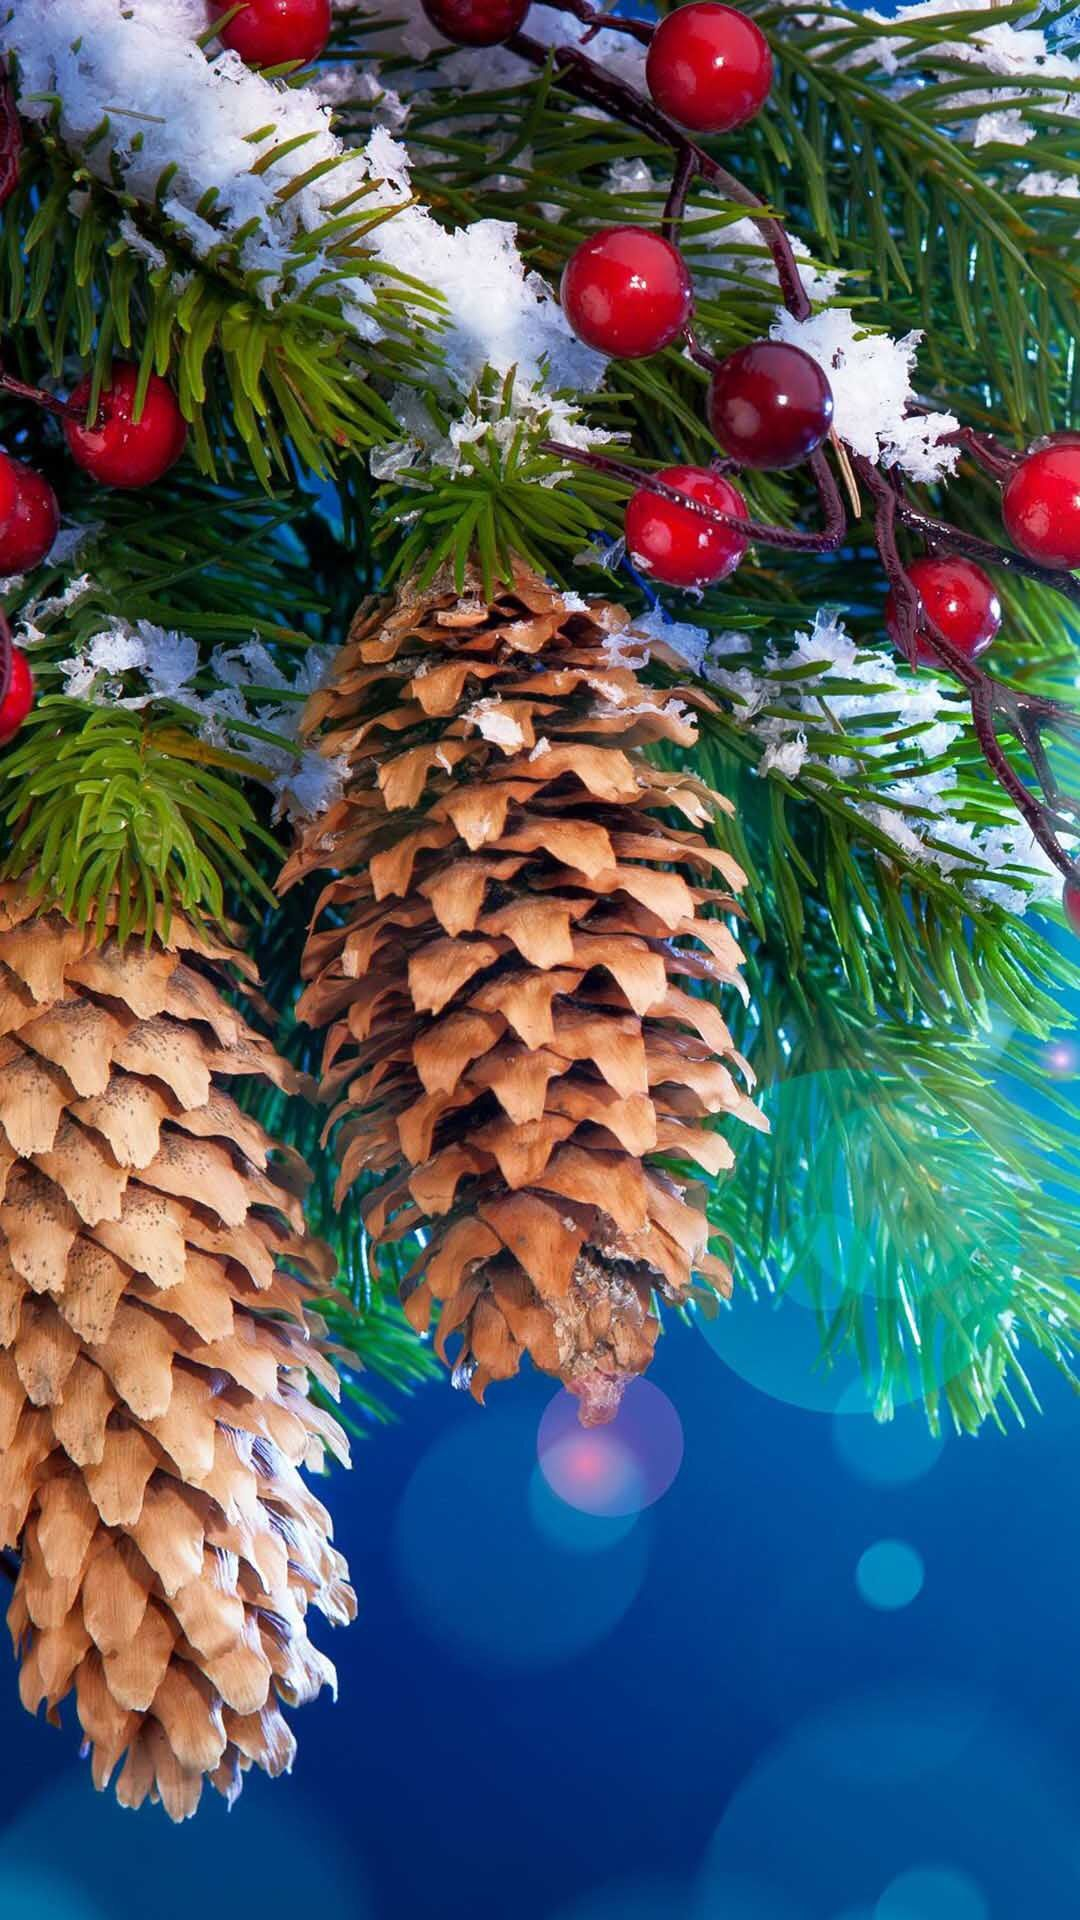 wallpapers iphone Christmas wishes, Christmas